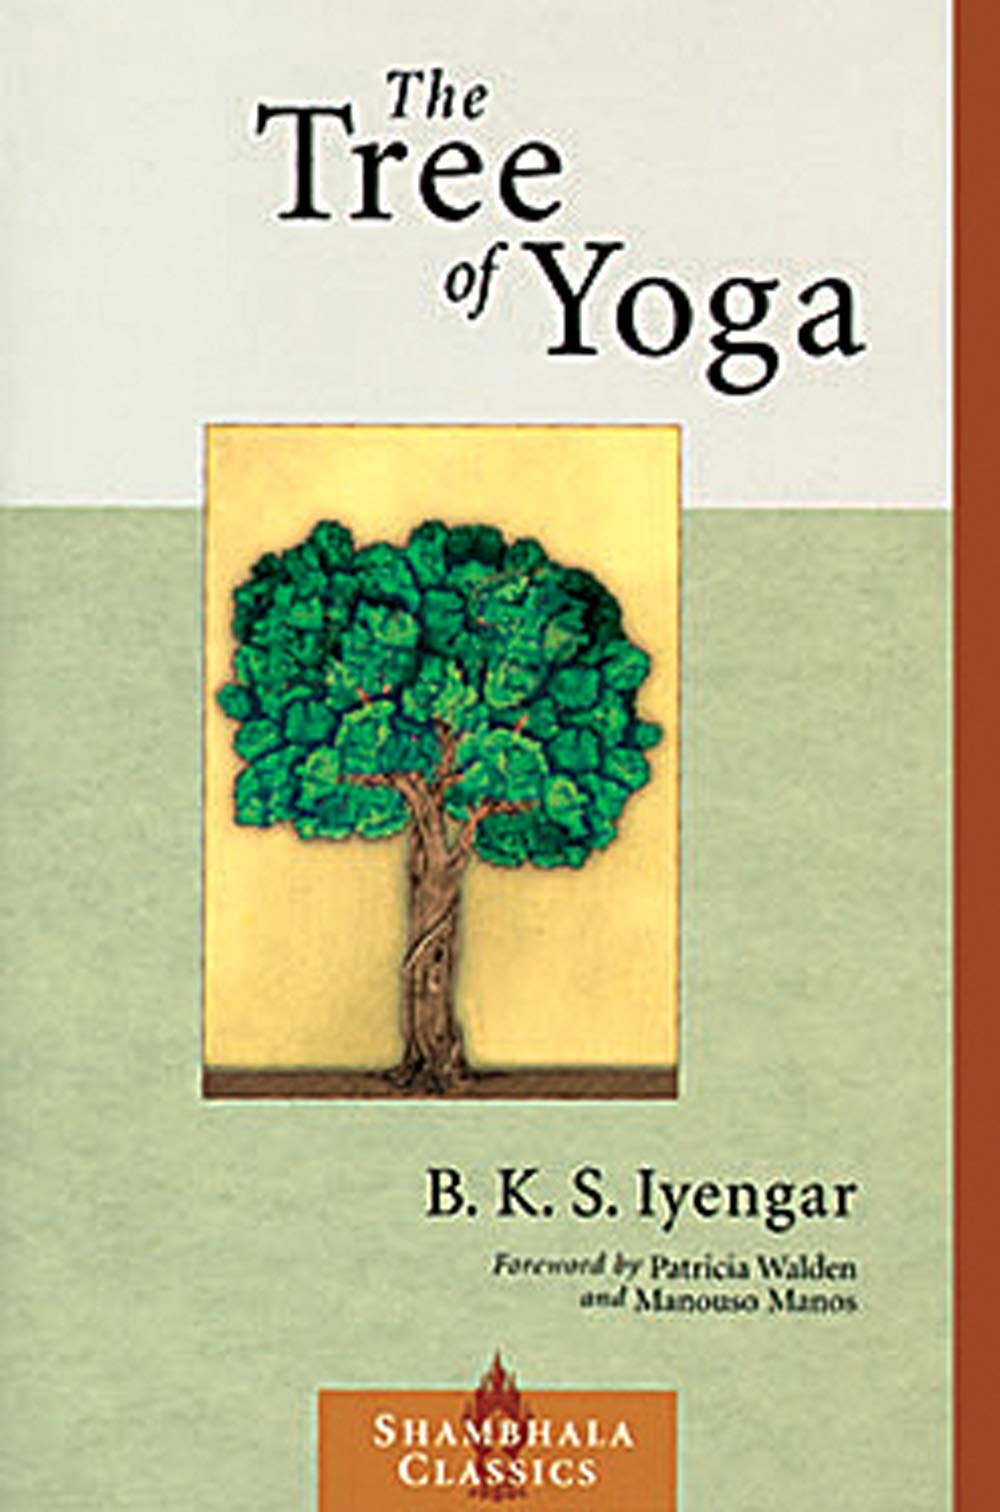 Download The Tree Of Yoga (Shambhala Classics) 